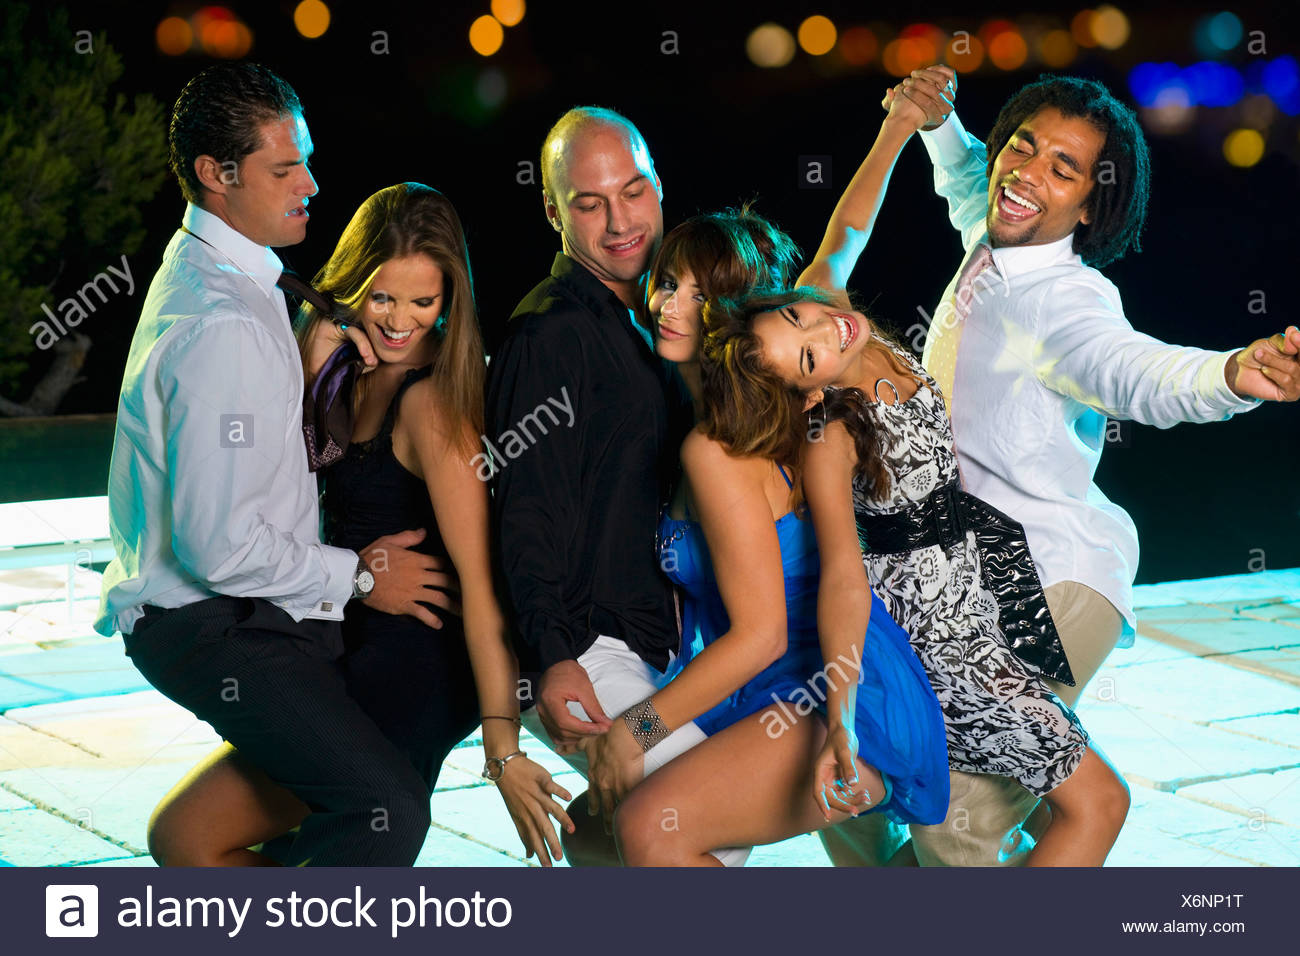 Men and women at a party - Stock Image